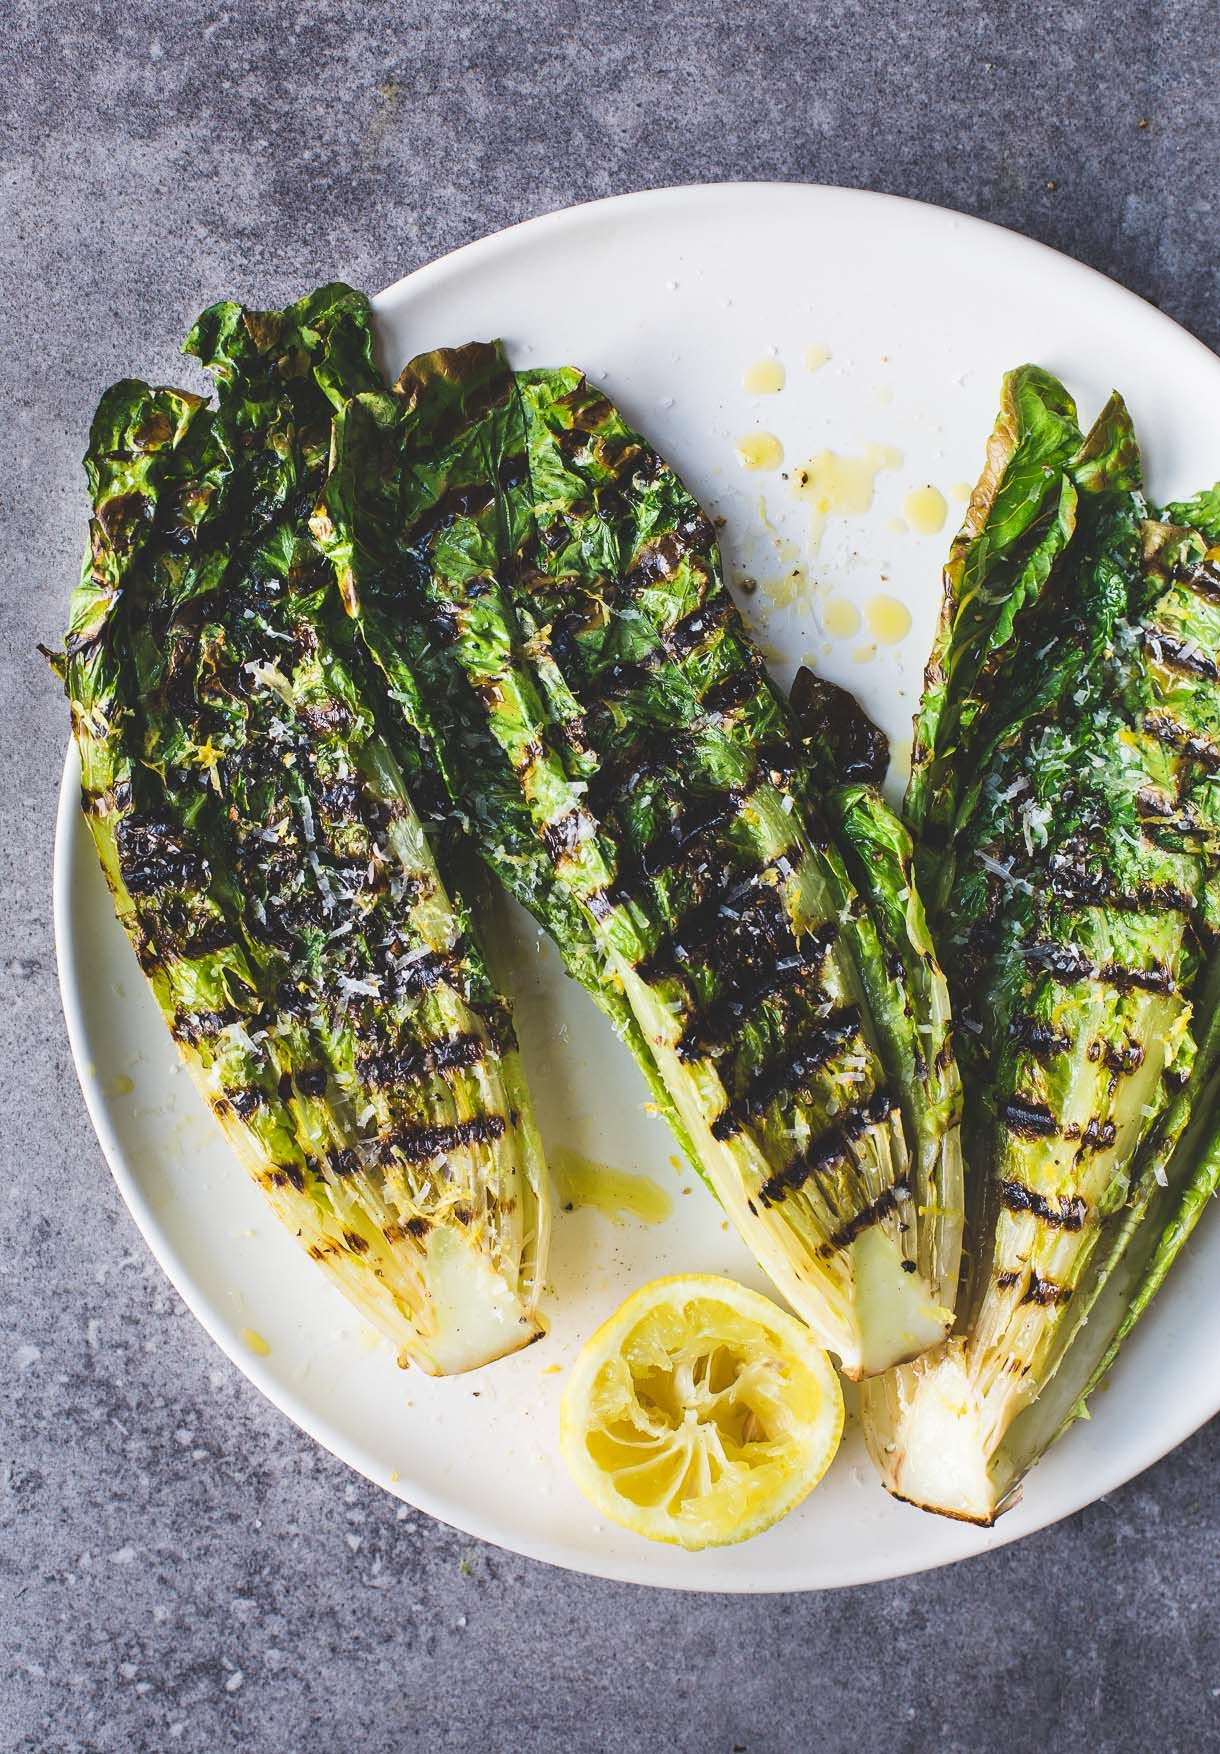 How to grill lettuce simple grilled romaine salad recipe video how to grill lettuce simple grilled romaine salad recipe video forumfinder Image collections